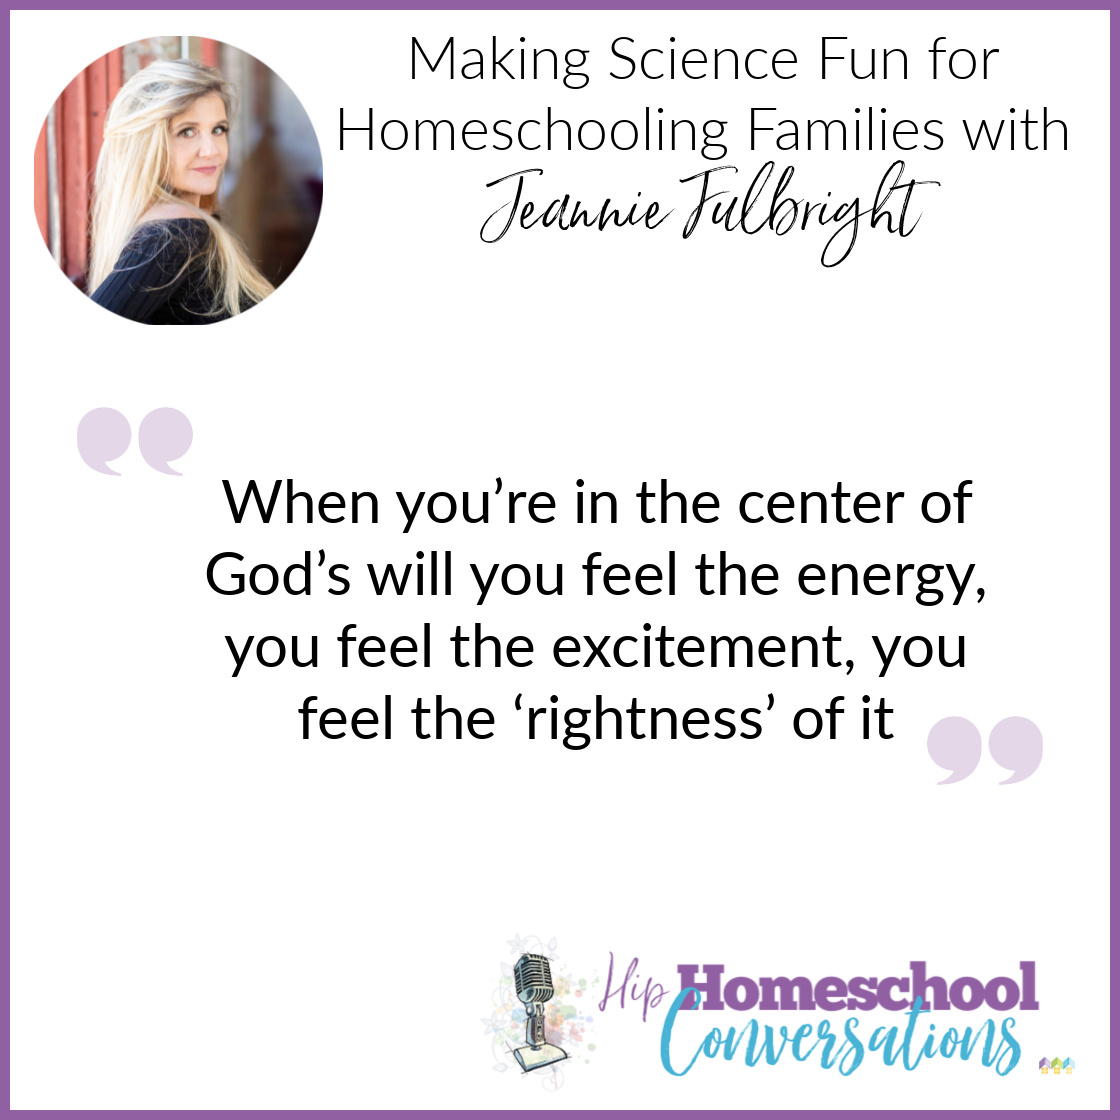 Whether you're a new or experienced homeschooler, in Trish's interview with Jeannie Fulbright you'll find tons of helpful information to increase the joy and wonder of learning science and history at home.